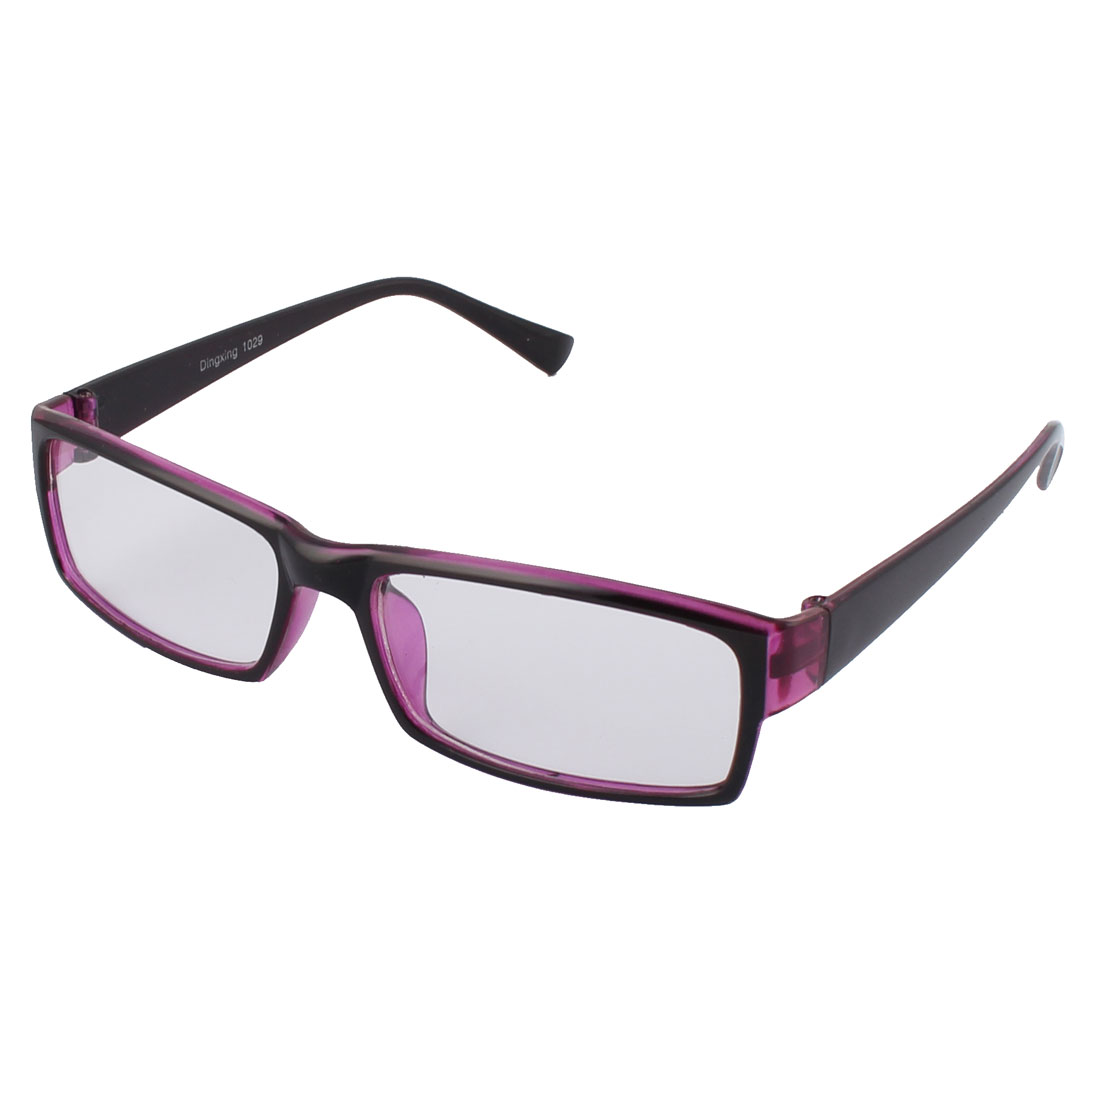 Stylish Clear Lens Light Purple Black Frame Plastic Eyewear Plain Glass